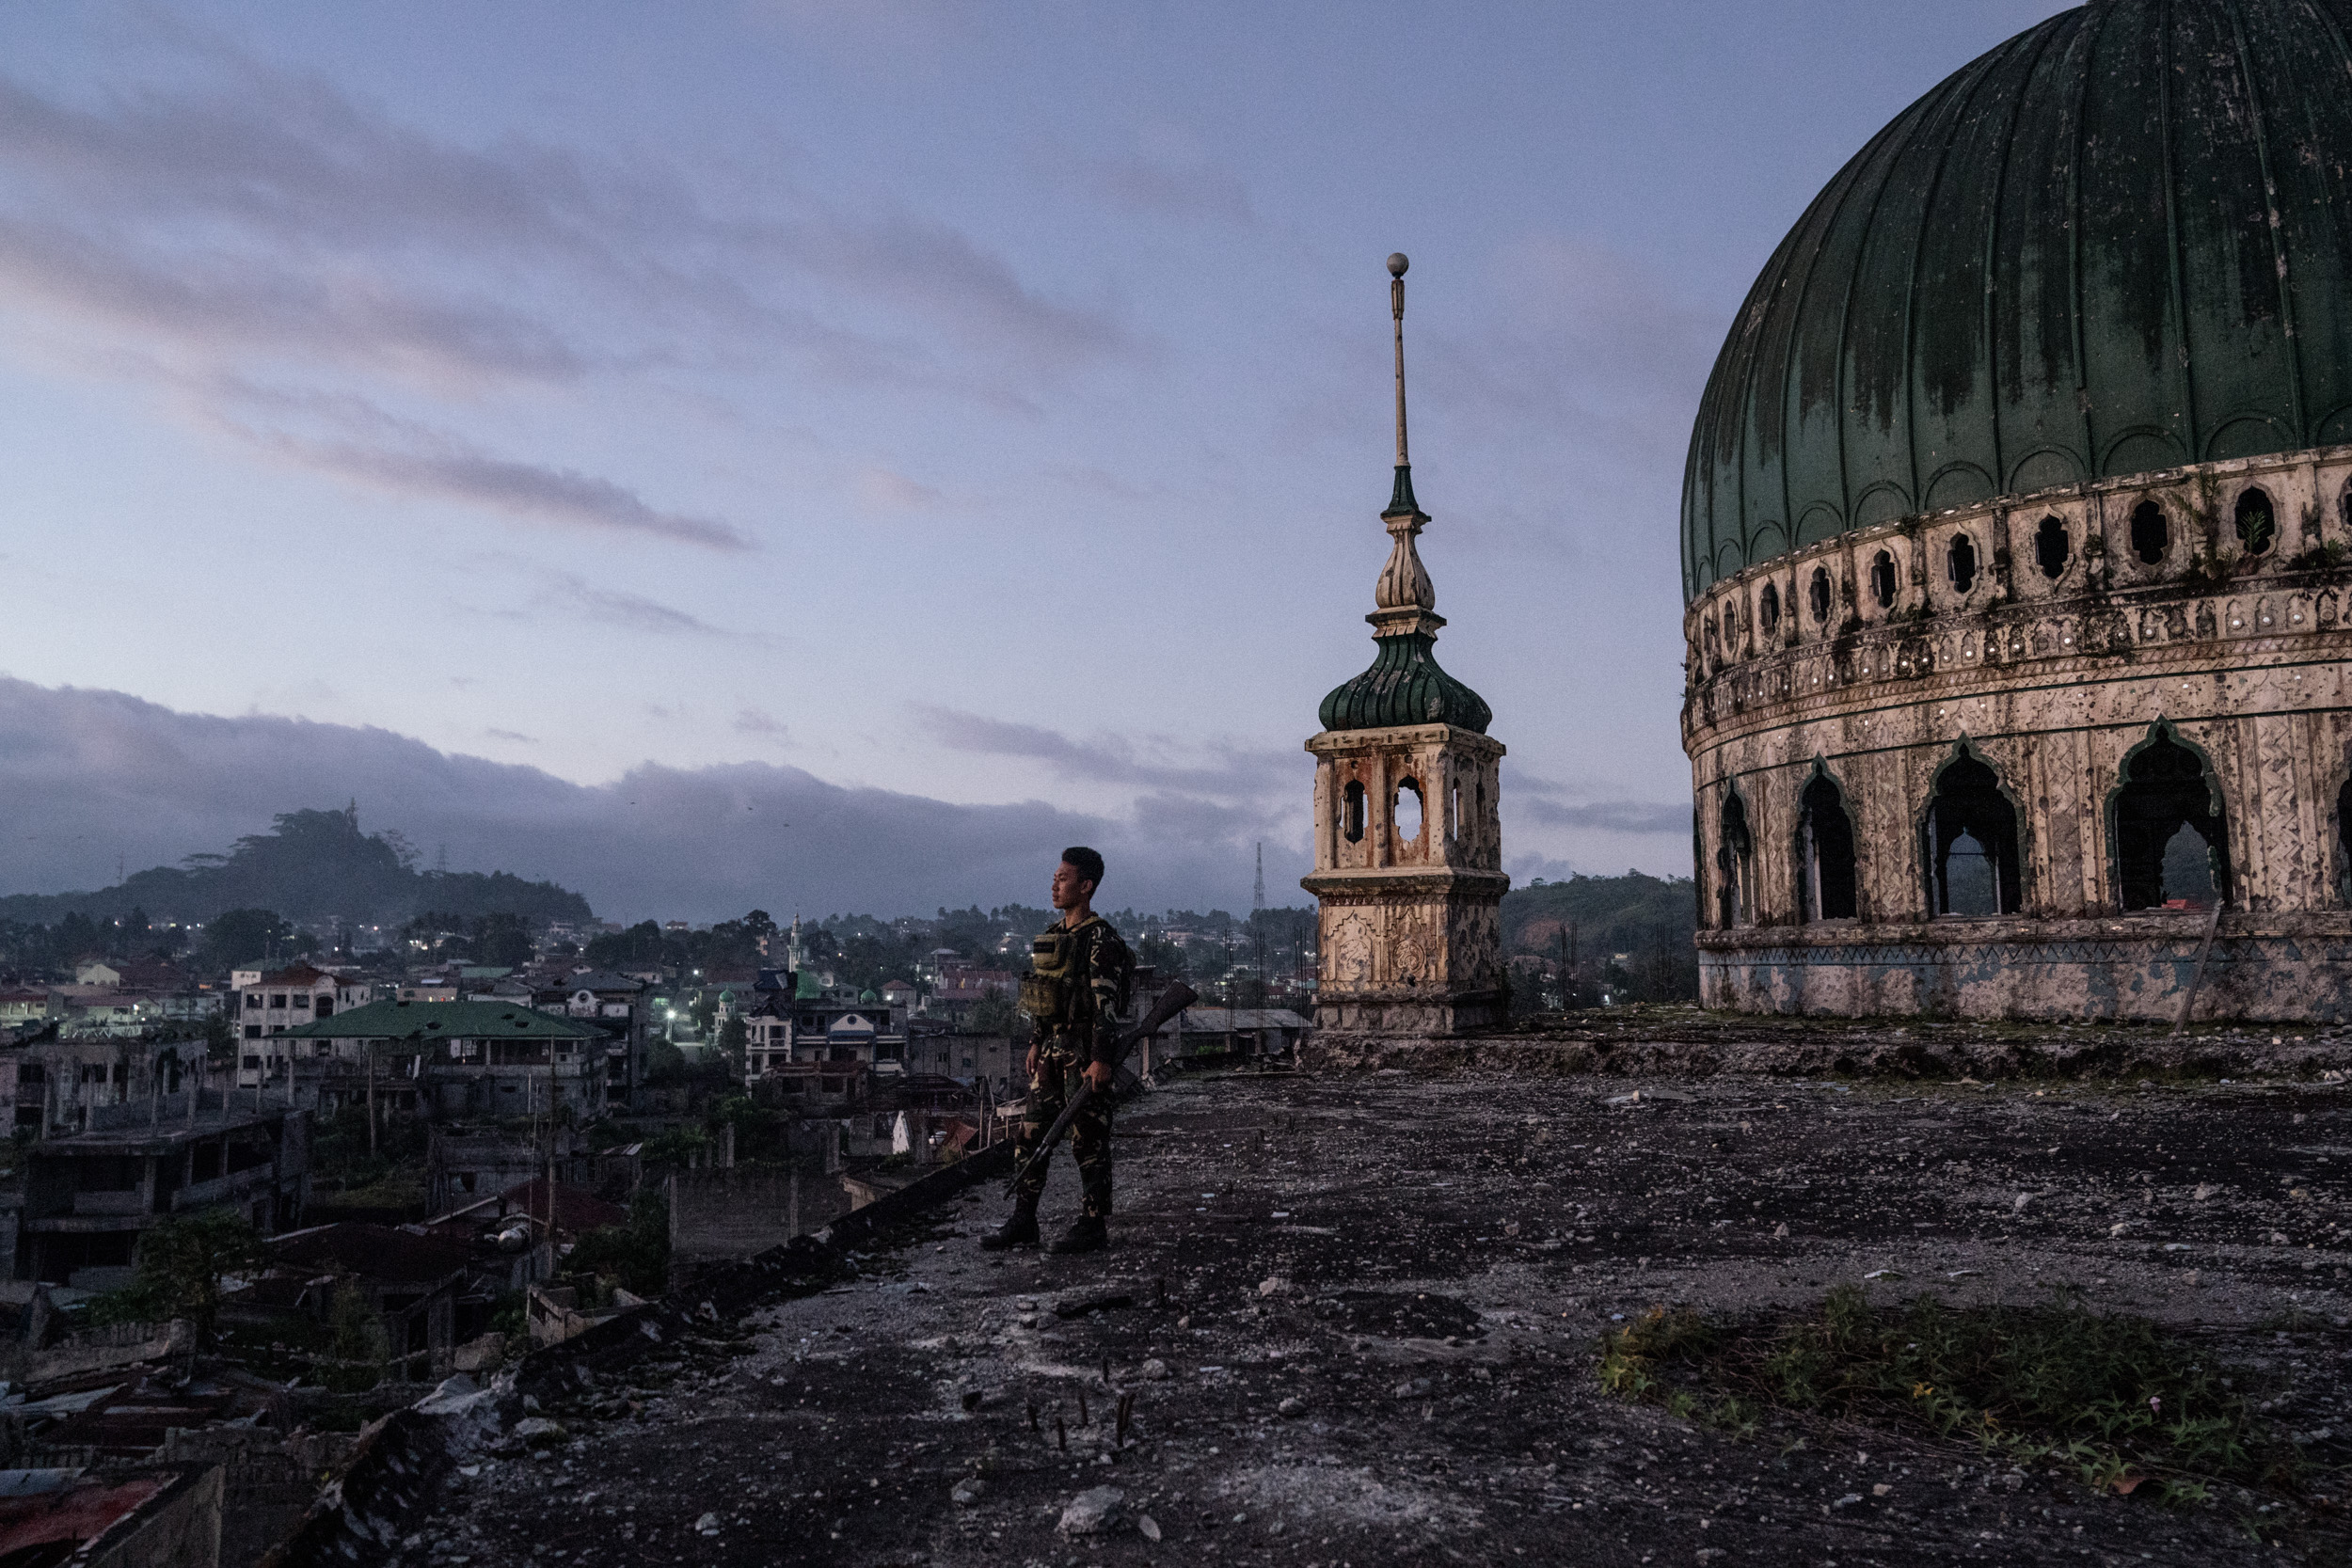 "MARAWI, PHILIPPINES. JANUARY 8. A soldier is seen in the Grand Mosque, which was destroyed during the Marawi siege. The masjid is still damaged more than a year since the Philippine military declared the Muslim-majority city of Marawi ""liberated"" from ISIS-linked militants. But the ravaged city is still waiting for billions in promised infrastructure and aid to arrive. Over a hundred thousand people remain displaced, and analysts say that militants are returning to the area, preying on growing frustration with the government in maintaining stability. (Hannah Reyes Morales for The Washington Post)"